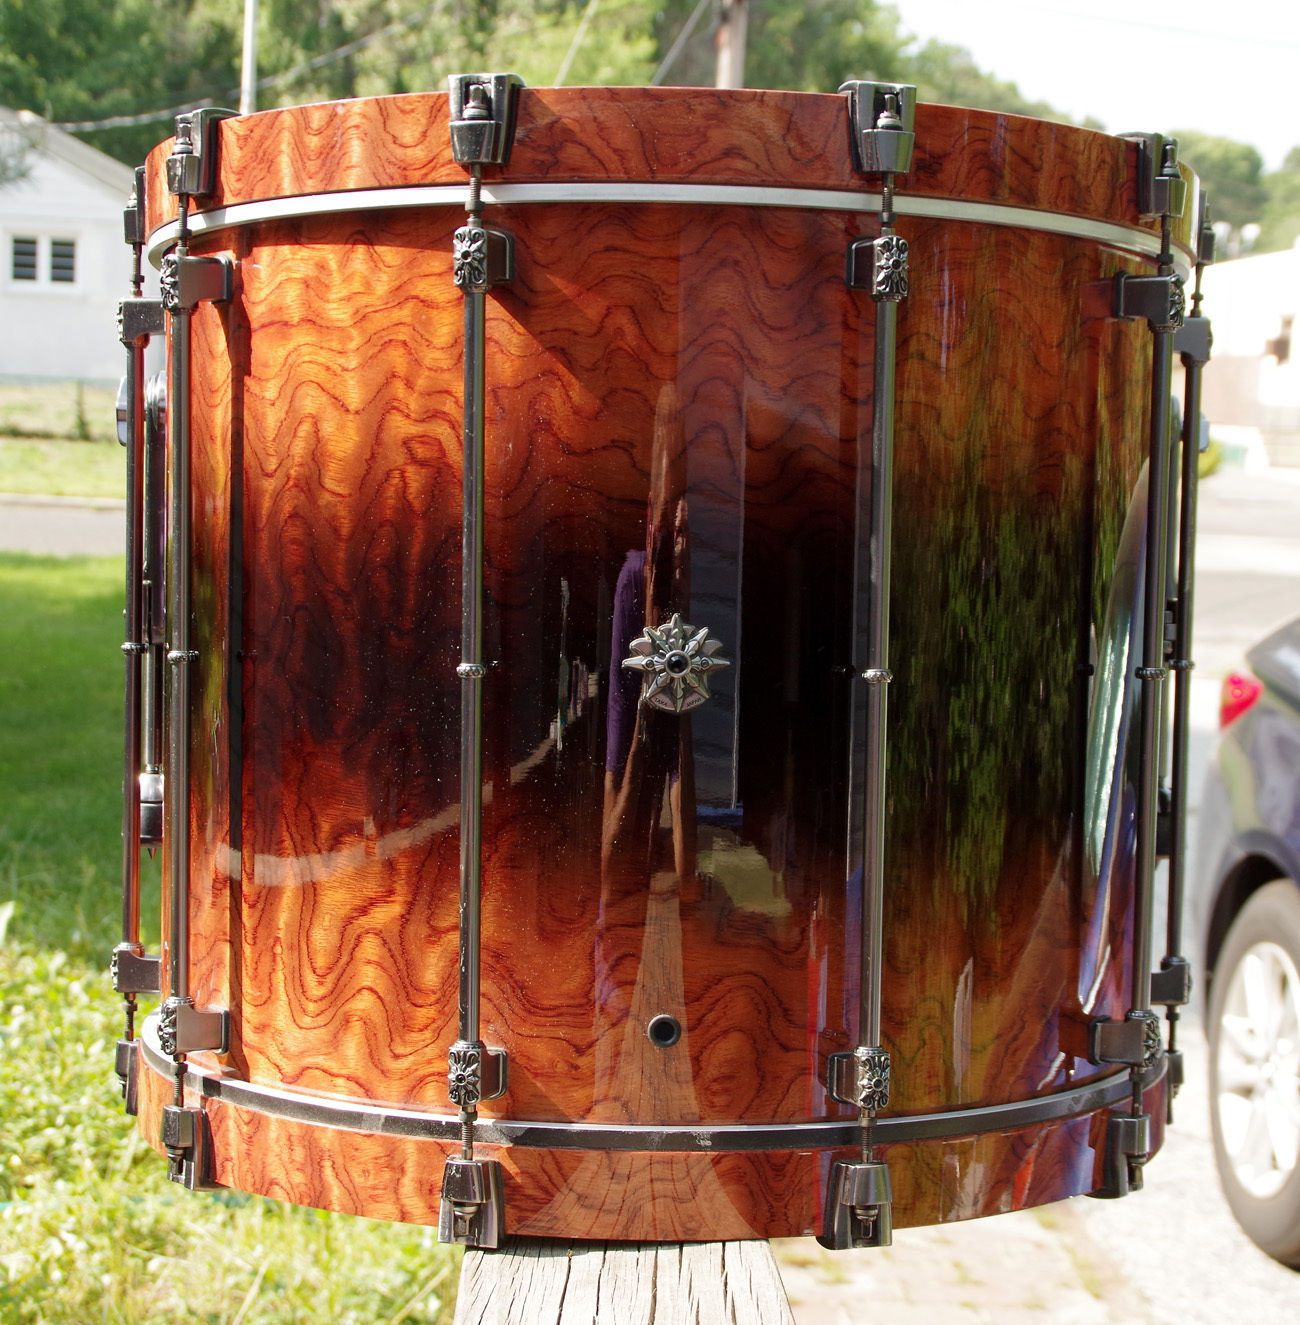 US $4,739.00 Used in Musical Instruments & Gear, Percussion, Drums